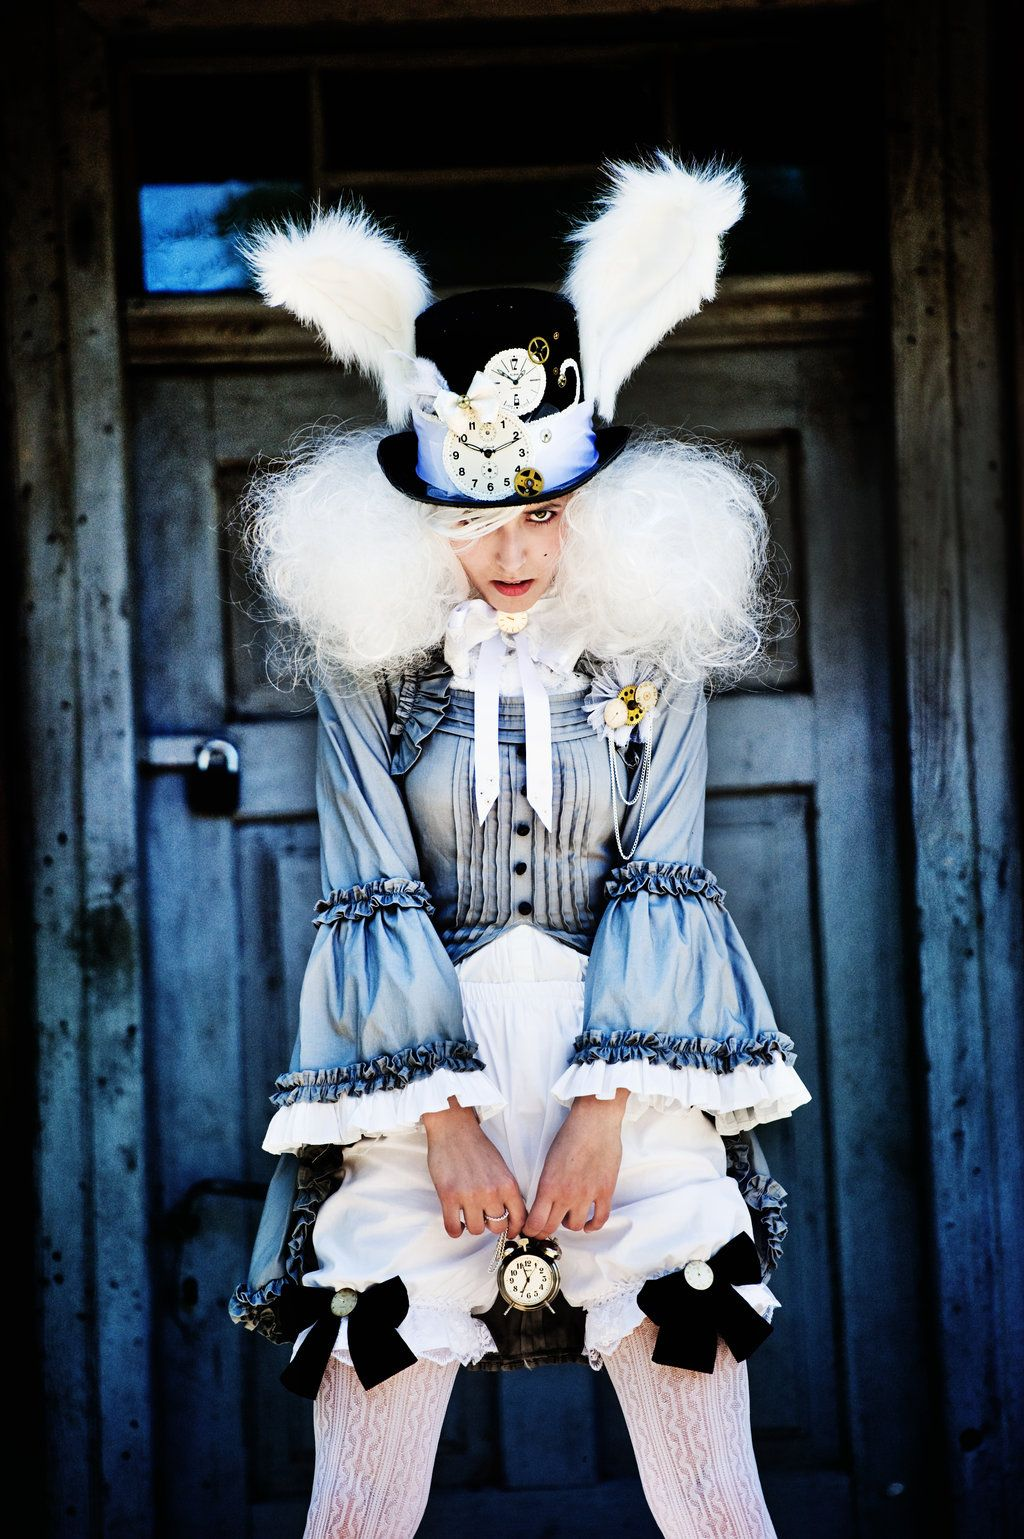 steampunk white rabbit cosplay google search cosplay. Black Bedroom Furniture Sets. Home Design Ideas